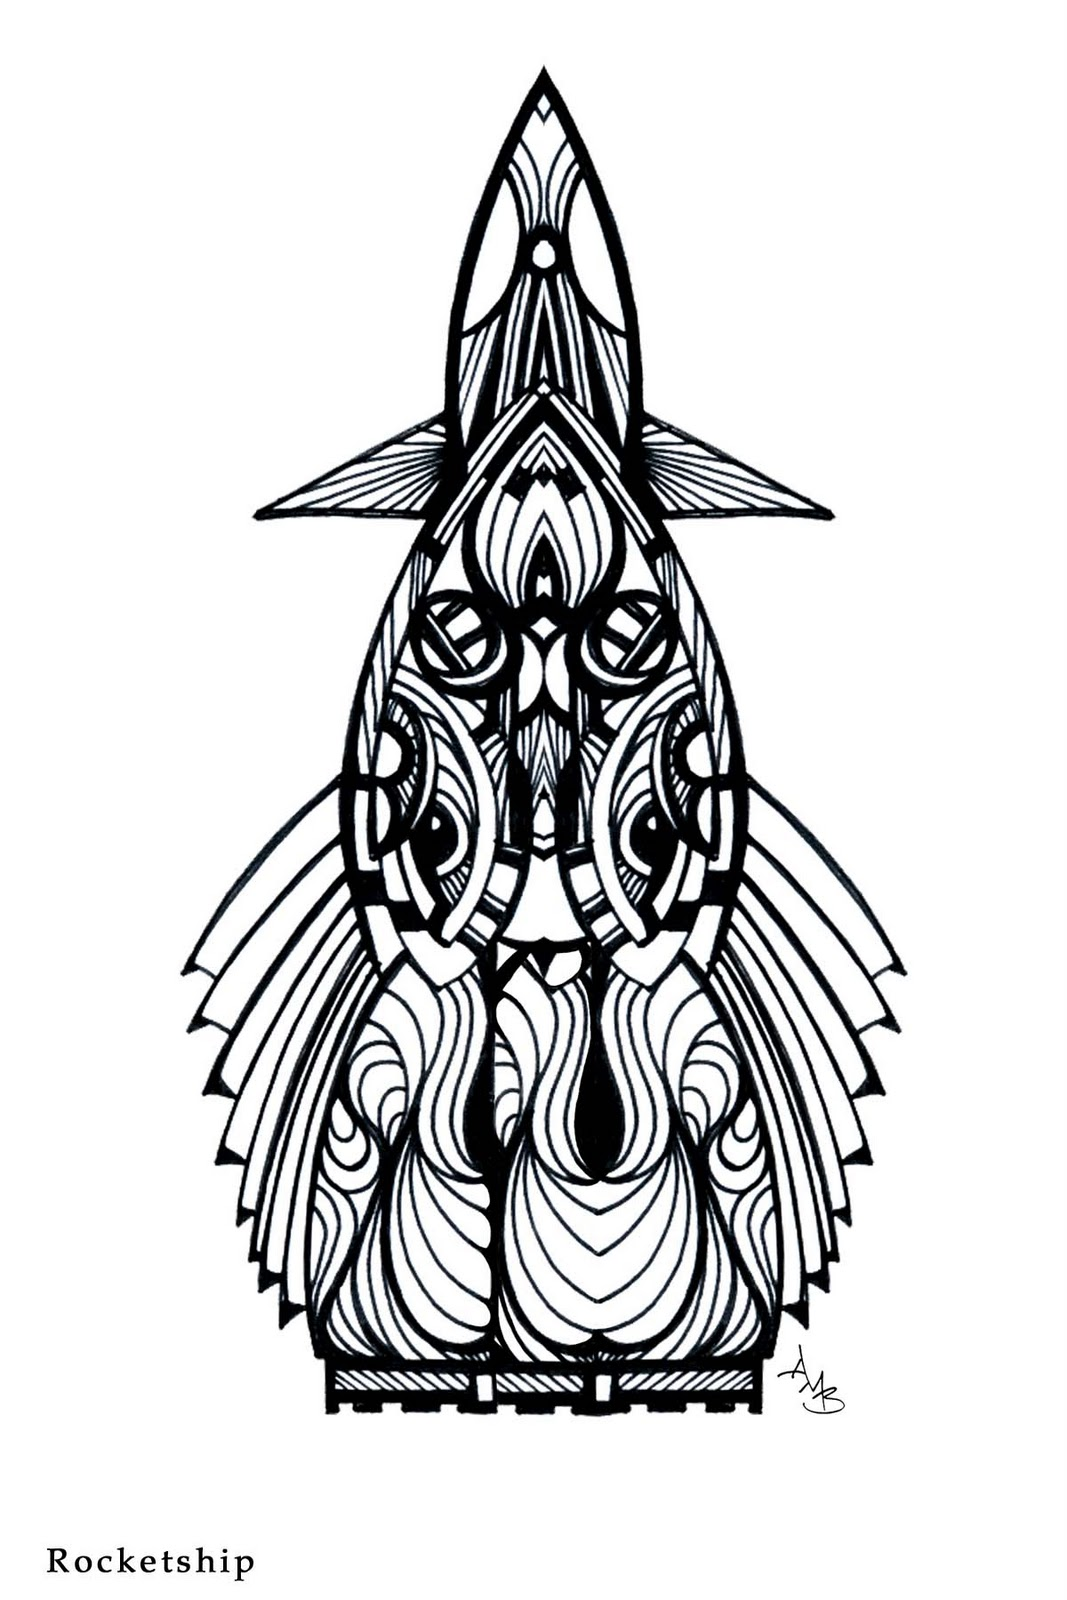 Free Rocket Ship Drawing Download Free Clip Art Free